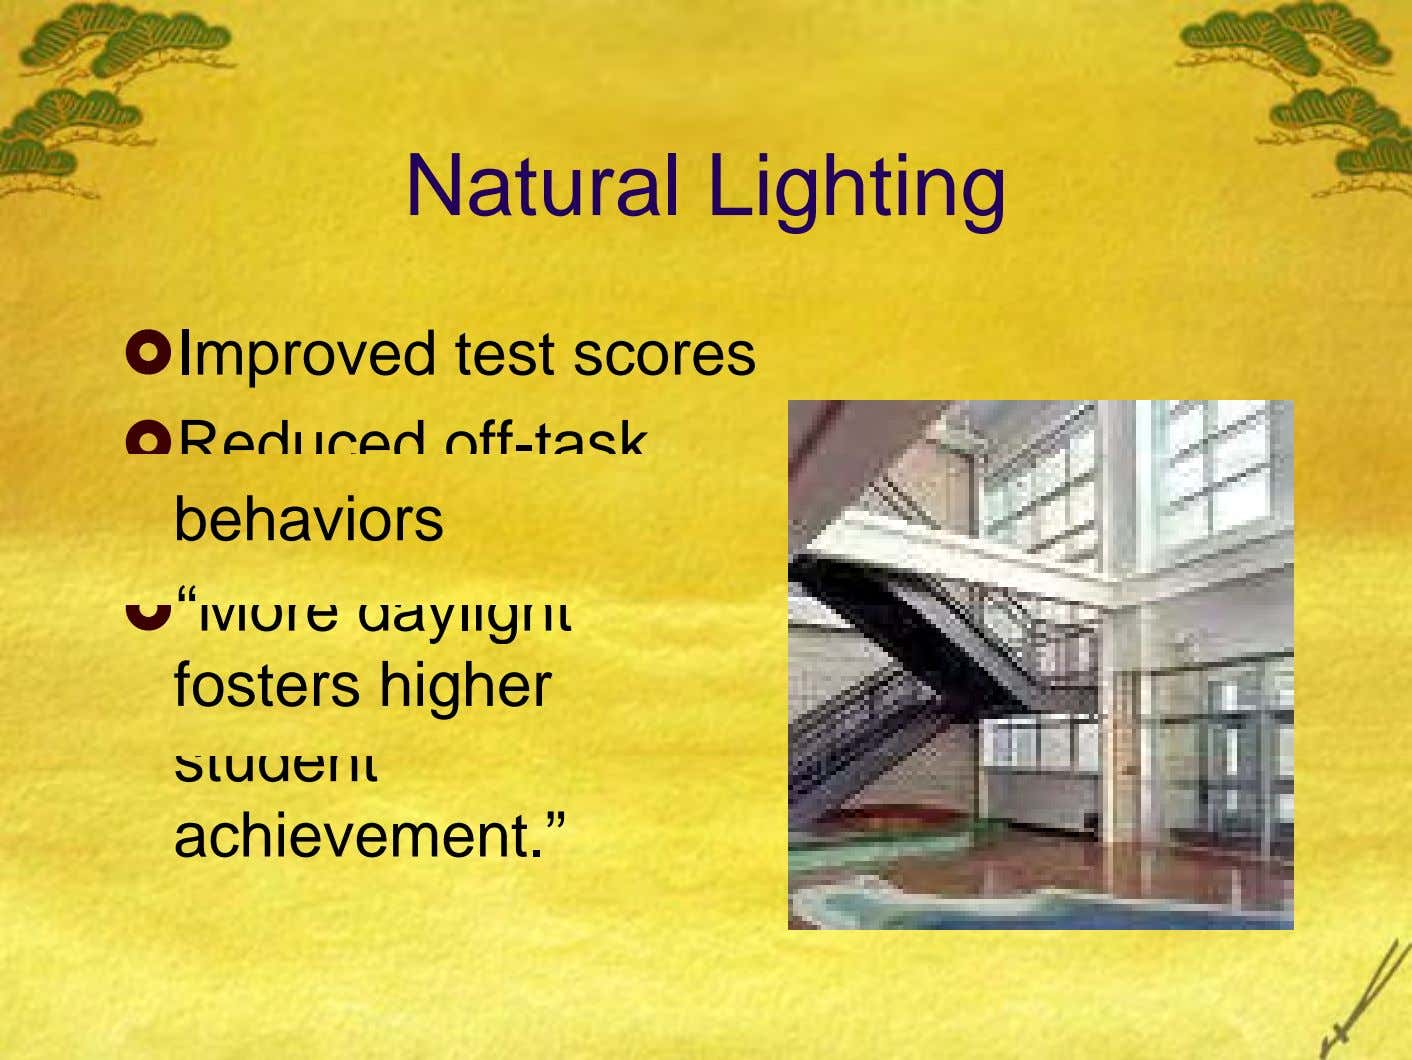 "Natural Lighting Improved test scores Reduced off-task behaviors ""More daylight fosters higher student achievement."""